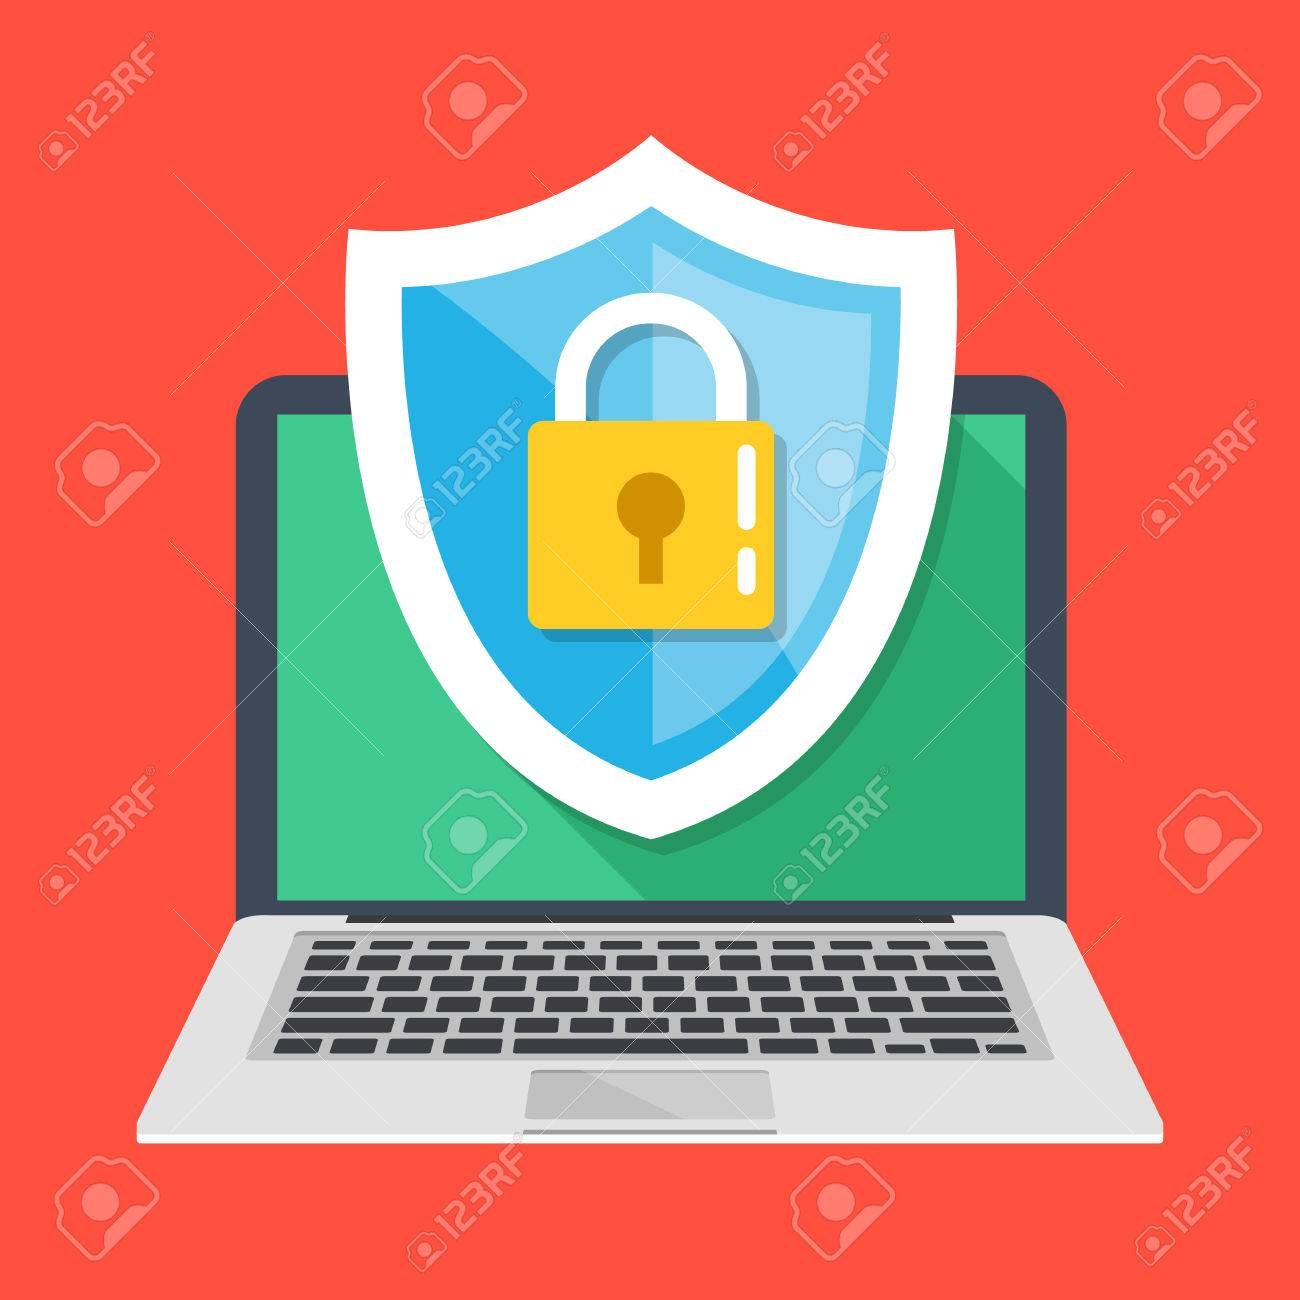 Computer security, protect your laptop concepts. Notebook and shield icon with padlock. Modern flat design vector illustration - 64043712